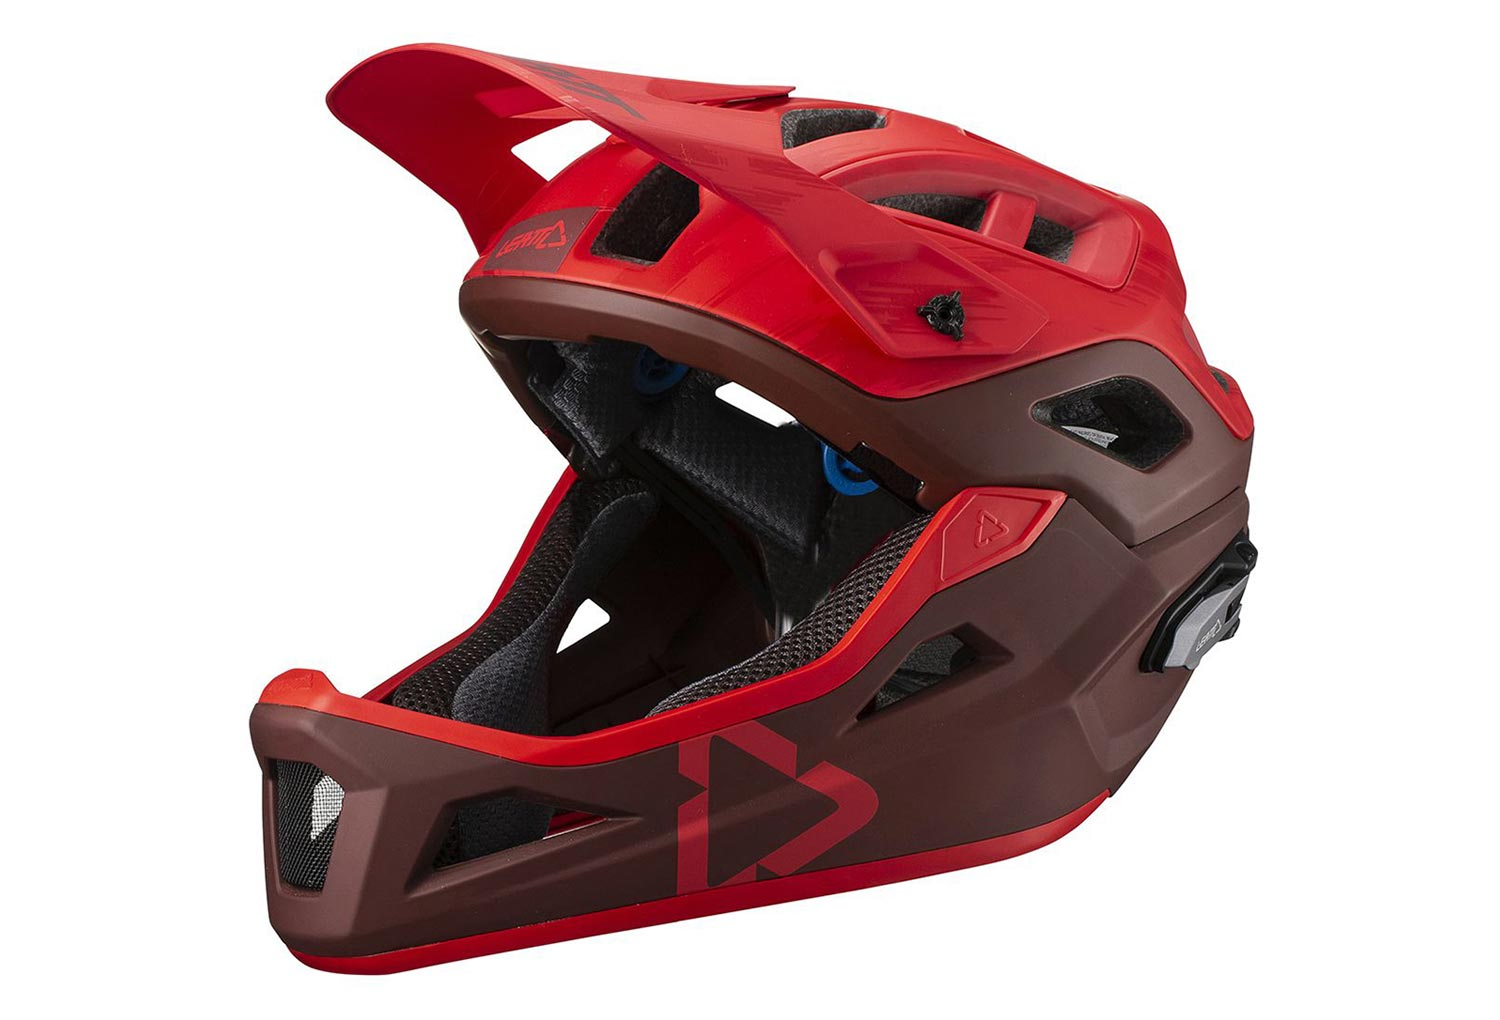 casque avec mentonni re amovible leatt dbx 3 0 enduro v19 1 rouge. Black Bedroom Furniture Sets. Home Design Ideas